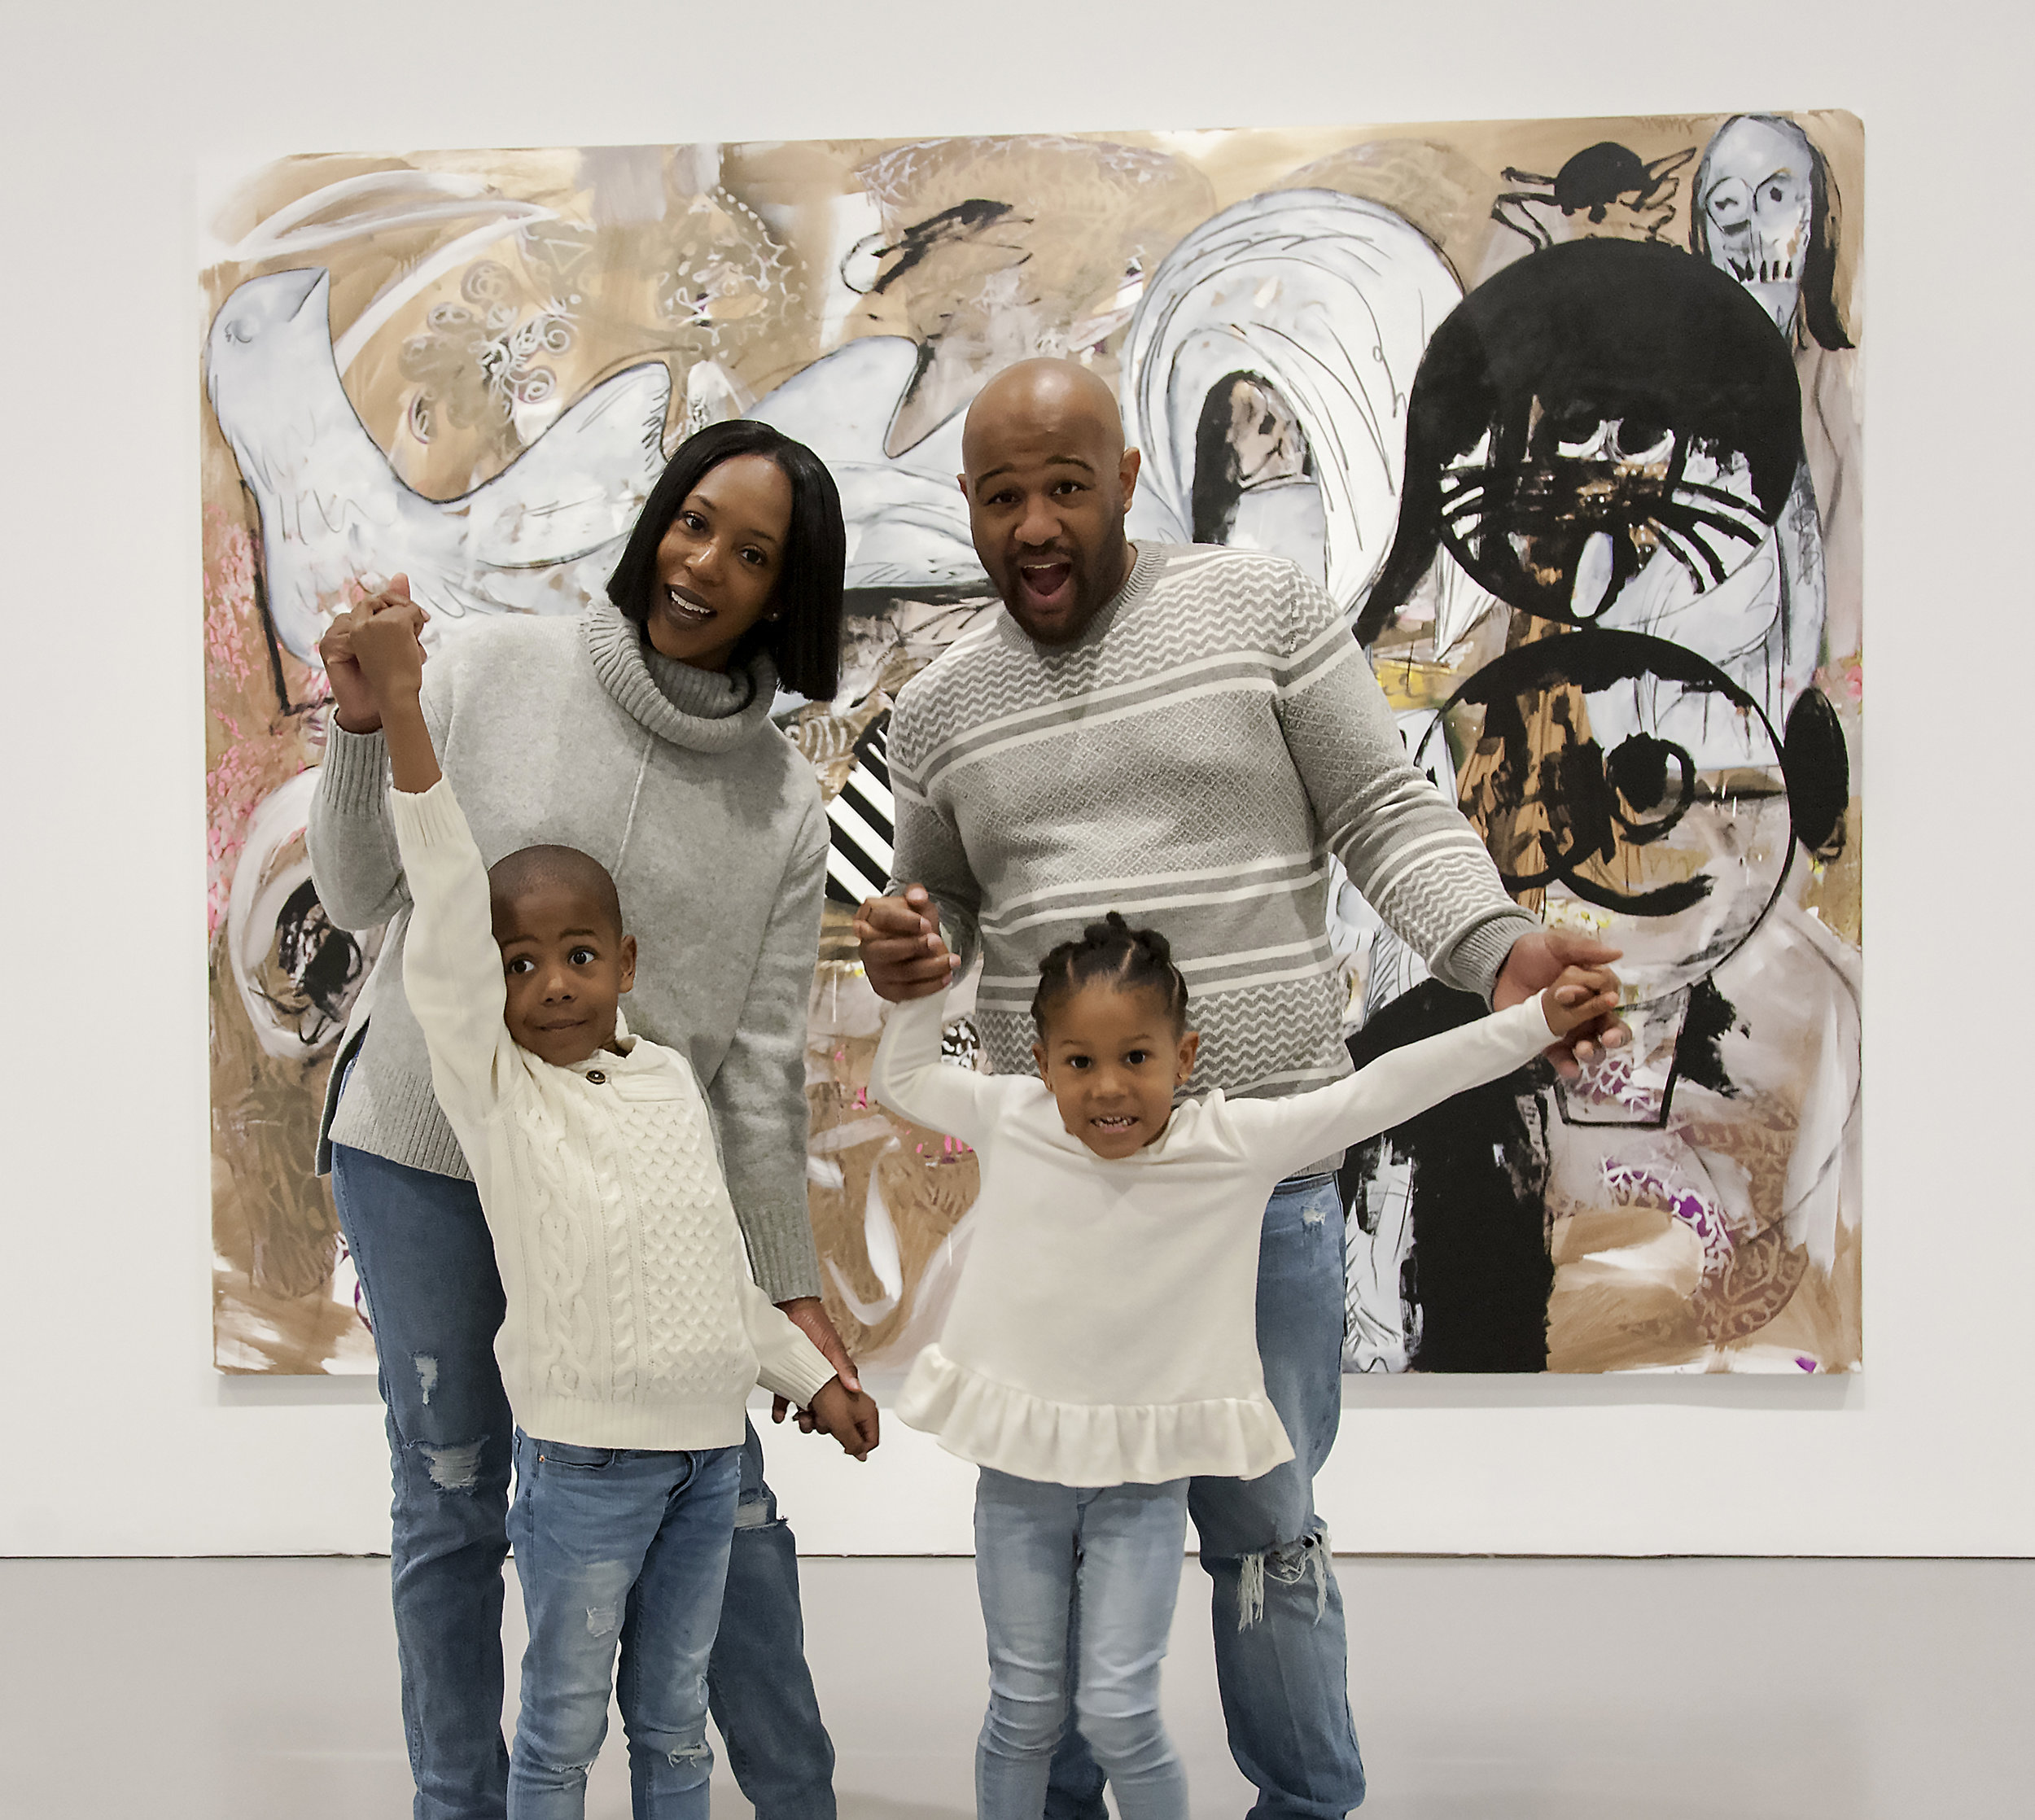 Doula Jacquelin Knighton with her family at the Hirshhorn Museum and Sculpture Garden